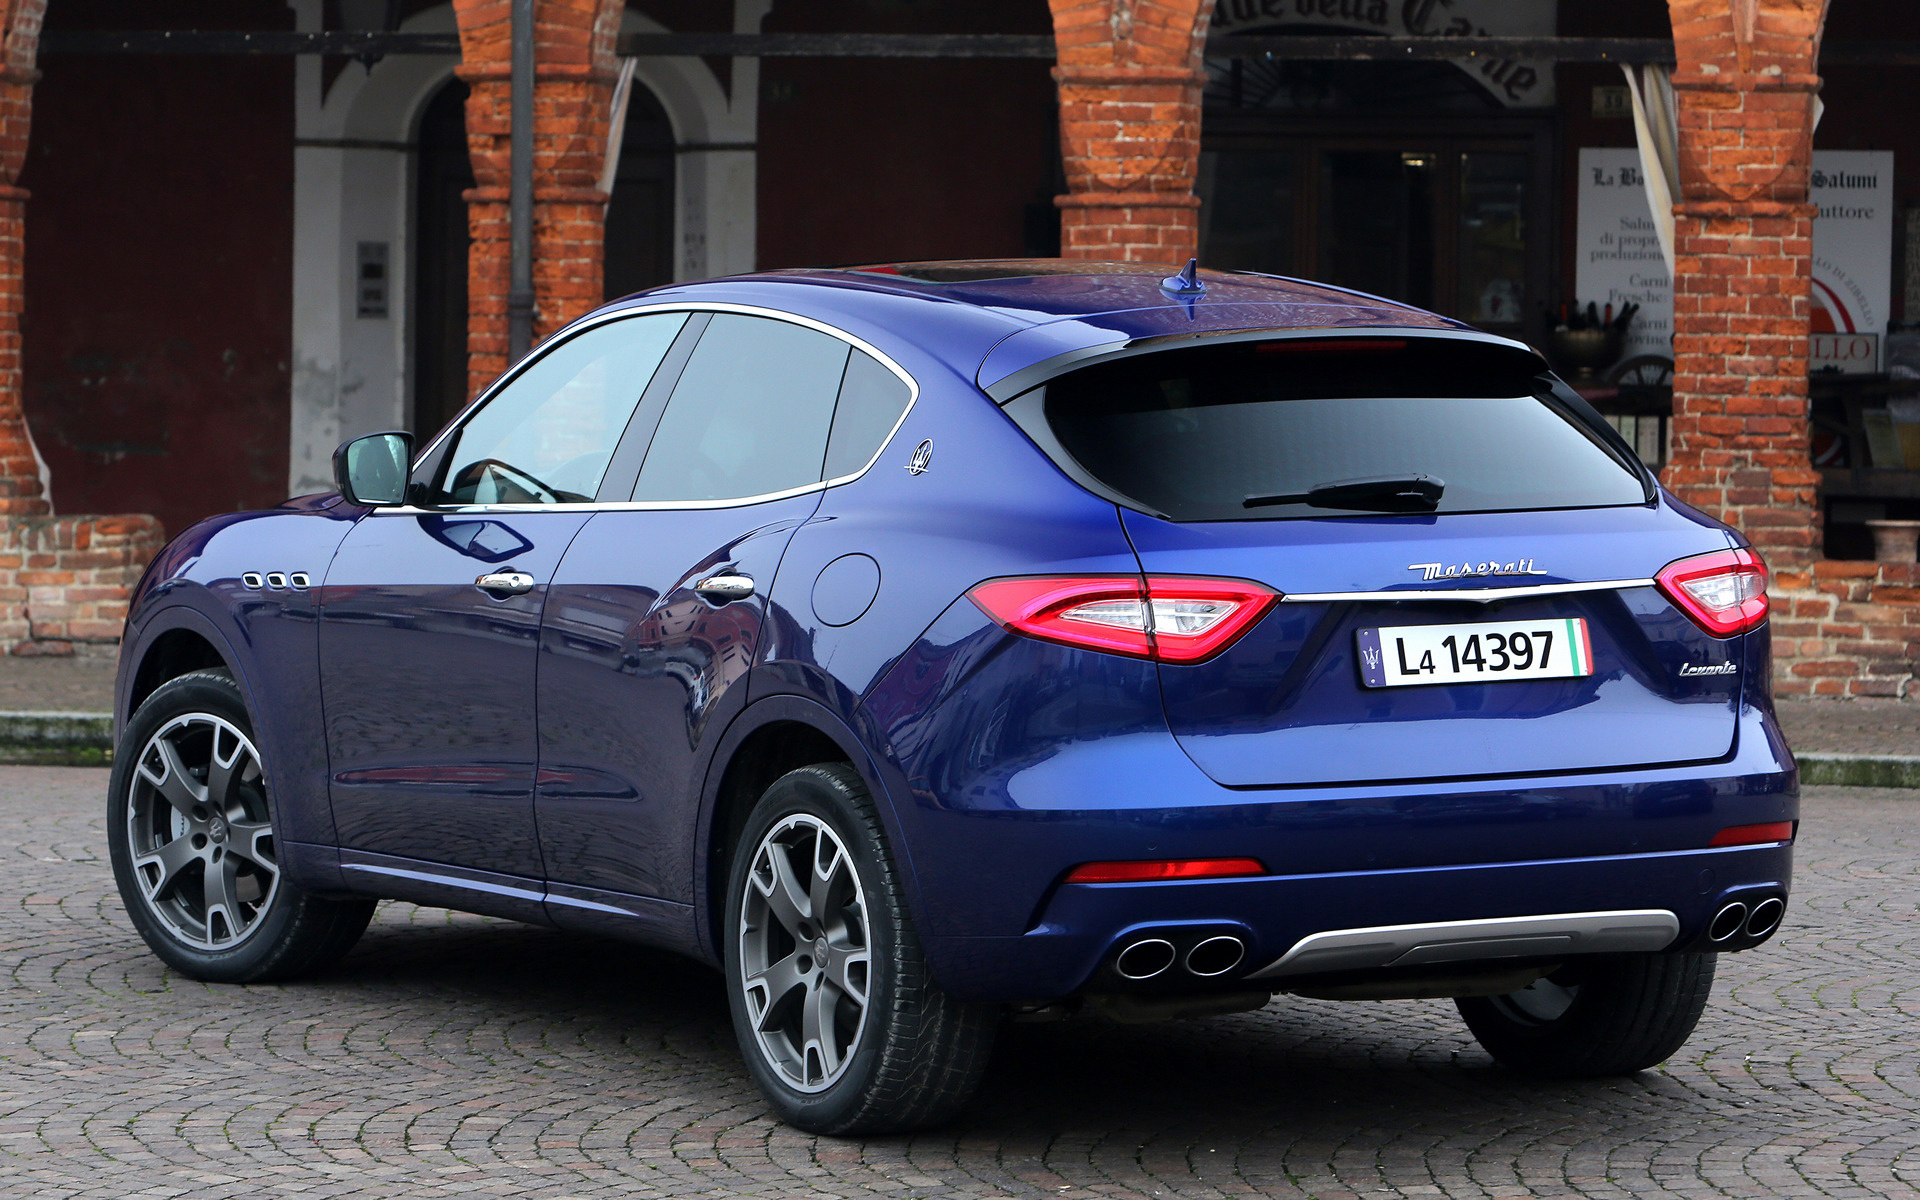 2016 maserati levante wallpapers and hd images car pixel - Maserati levante wallpaper ...